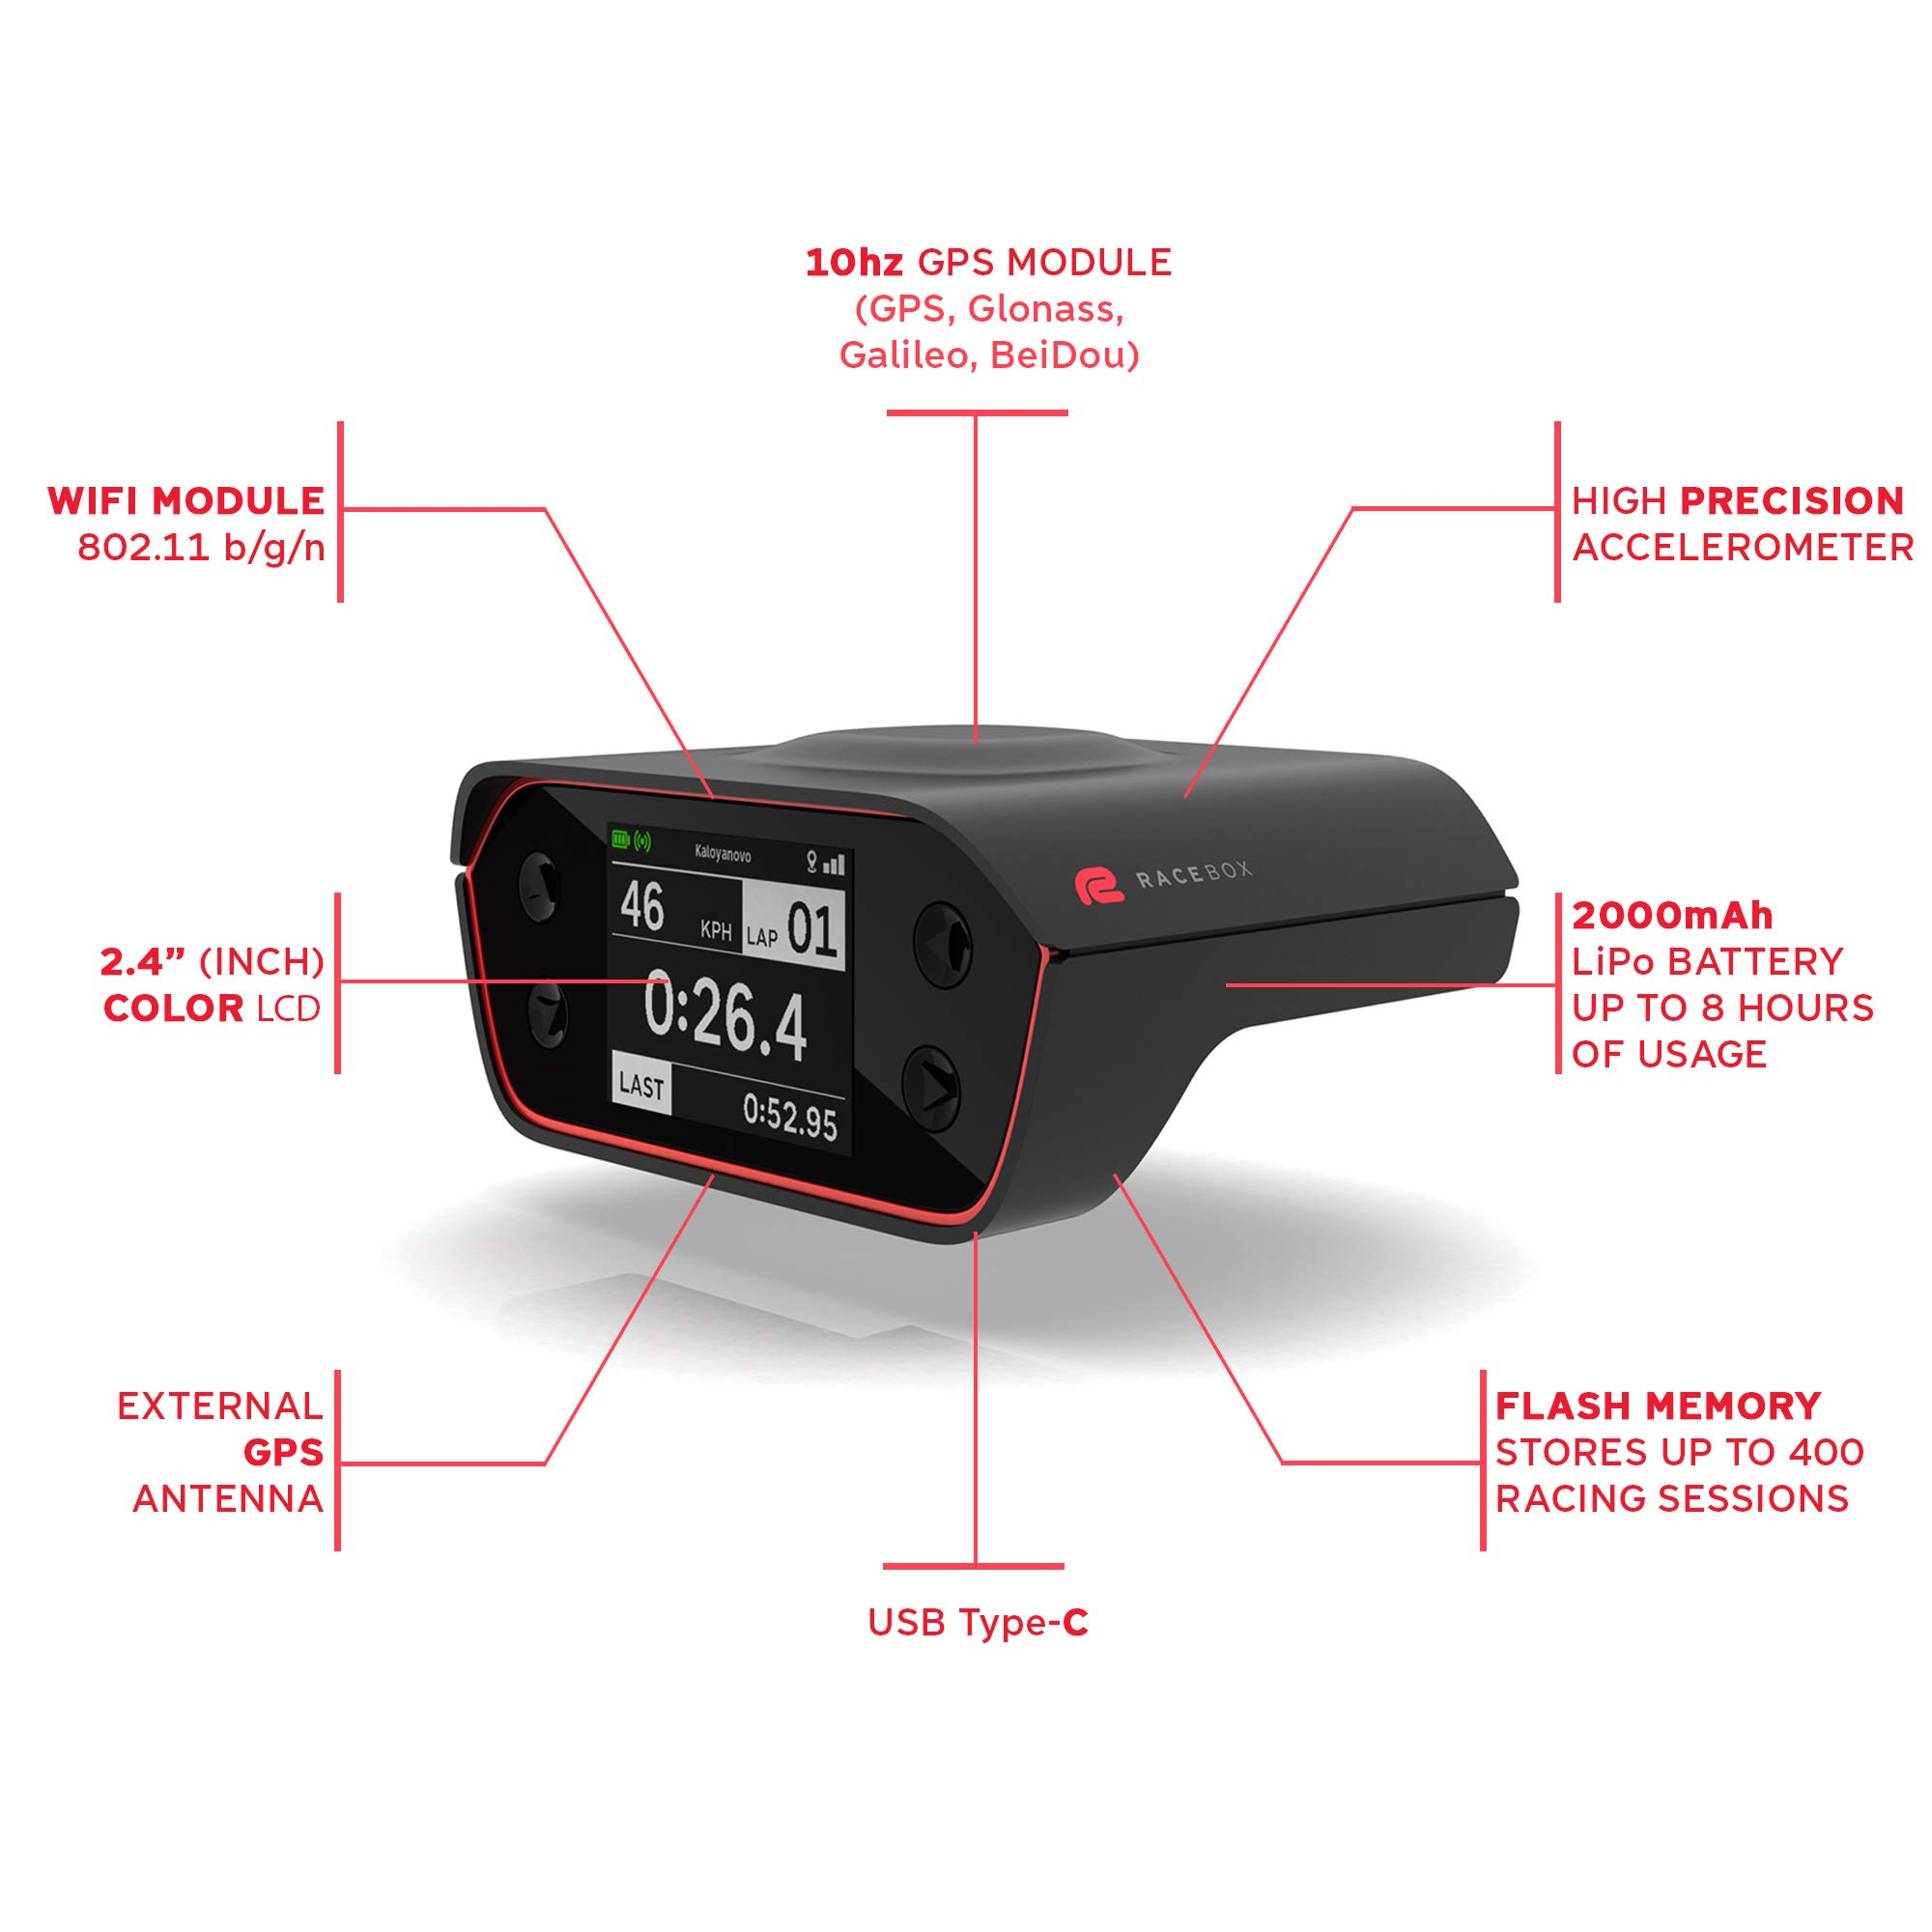 RaceBox GPS Based Performance Meter Box with Mobile App 10Hz Car Race Lap Timer and Drag Meter Racing Timing System